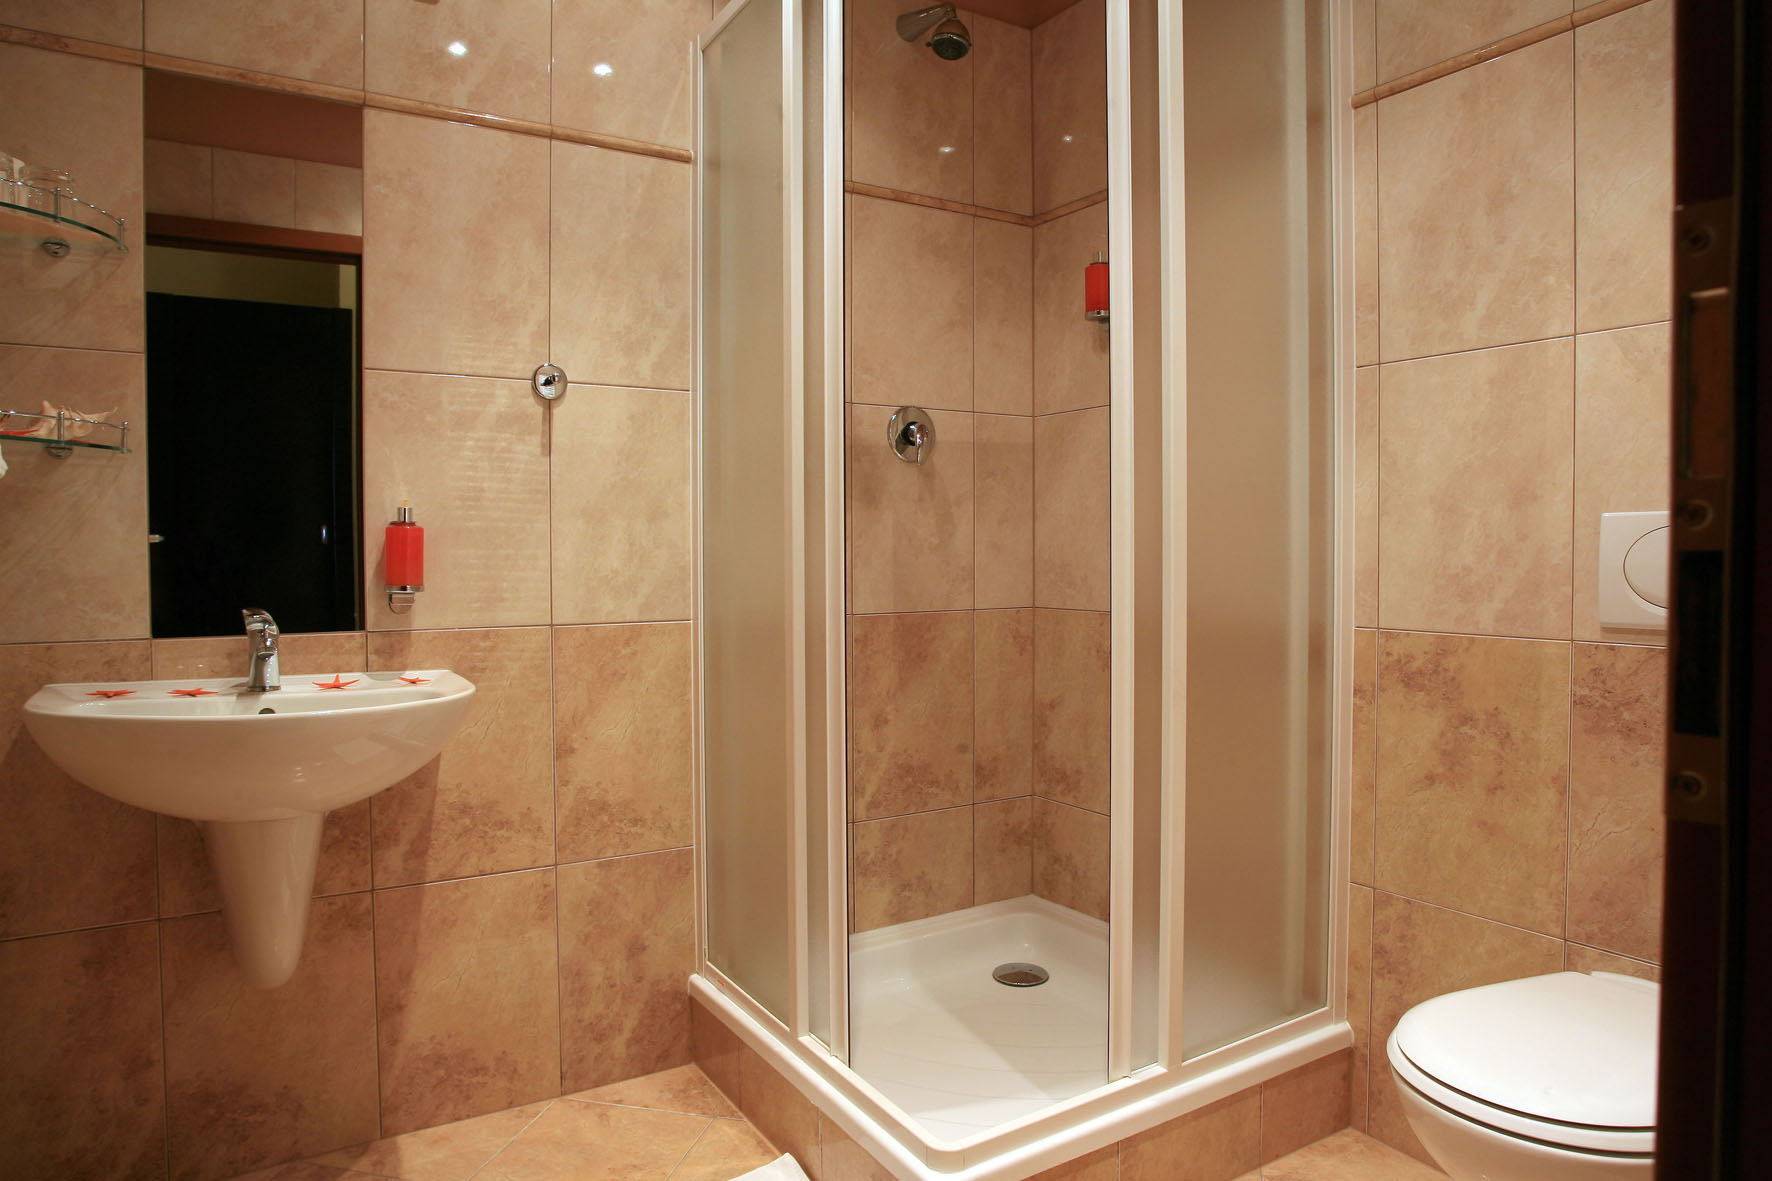 Bathrooms designs large and beautiful photos photo to for Find bathroom designs